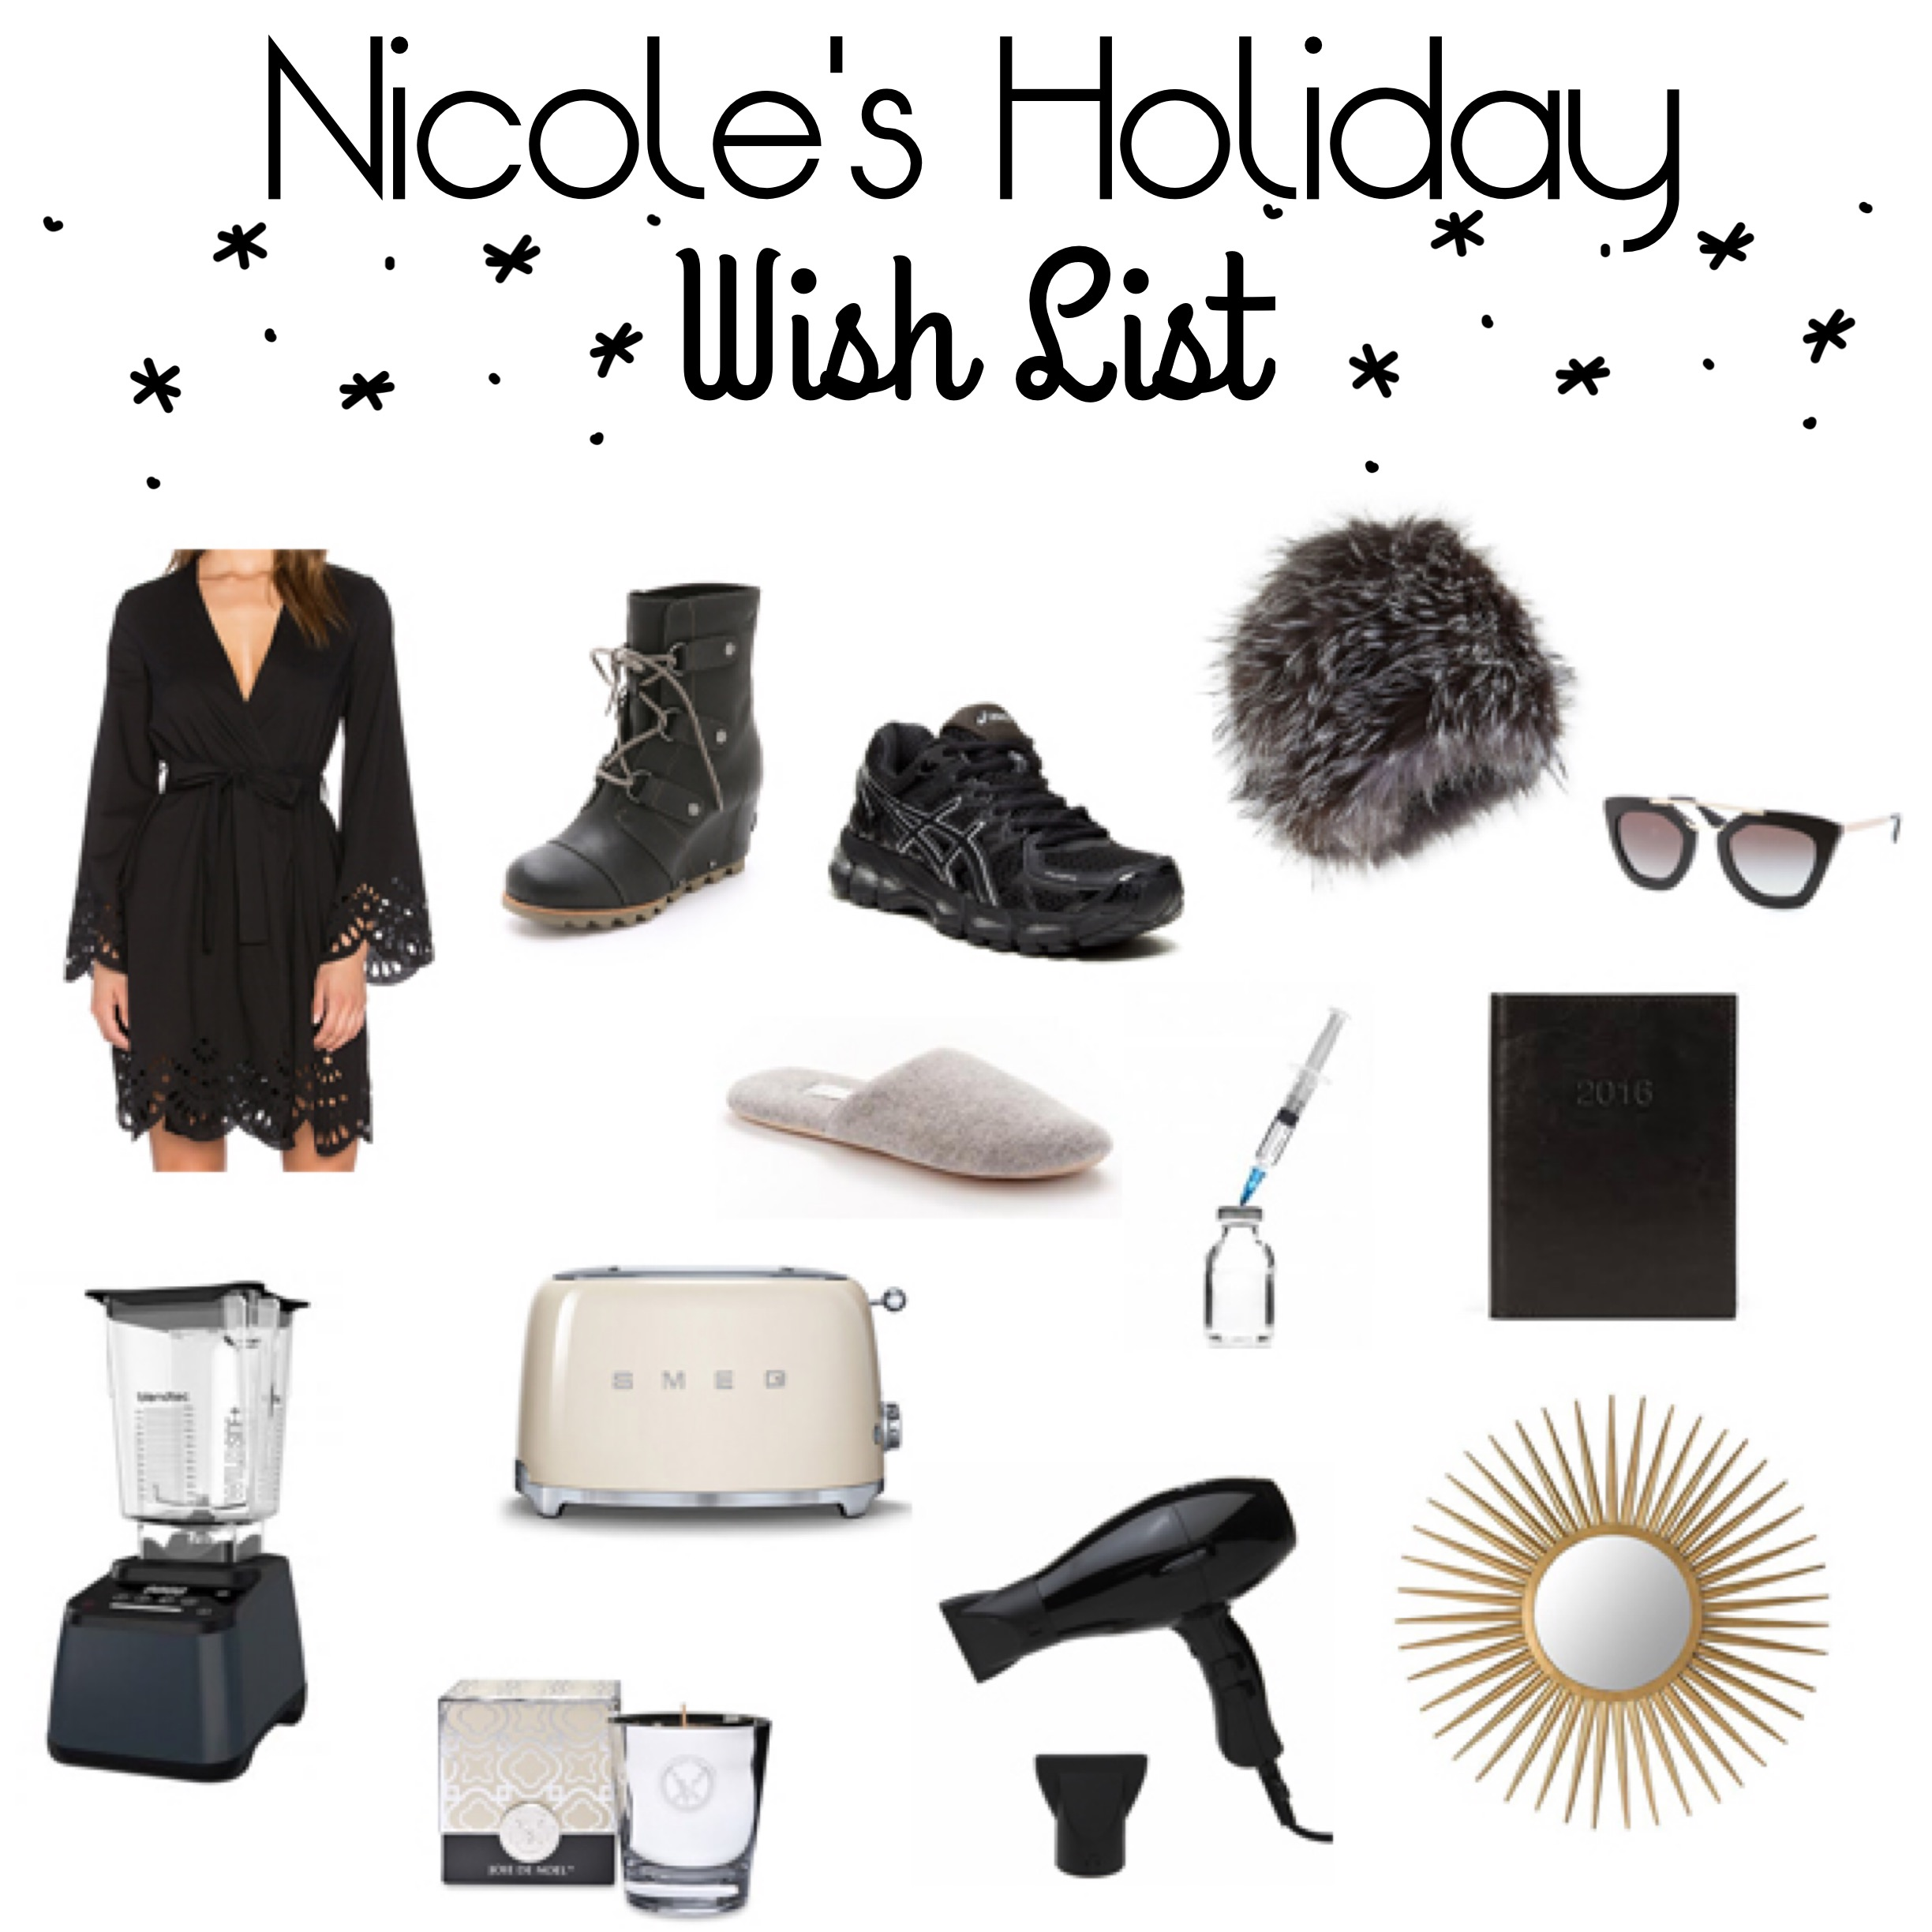 Nicole's Holiday Gift Guide